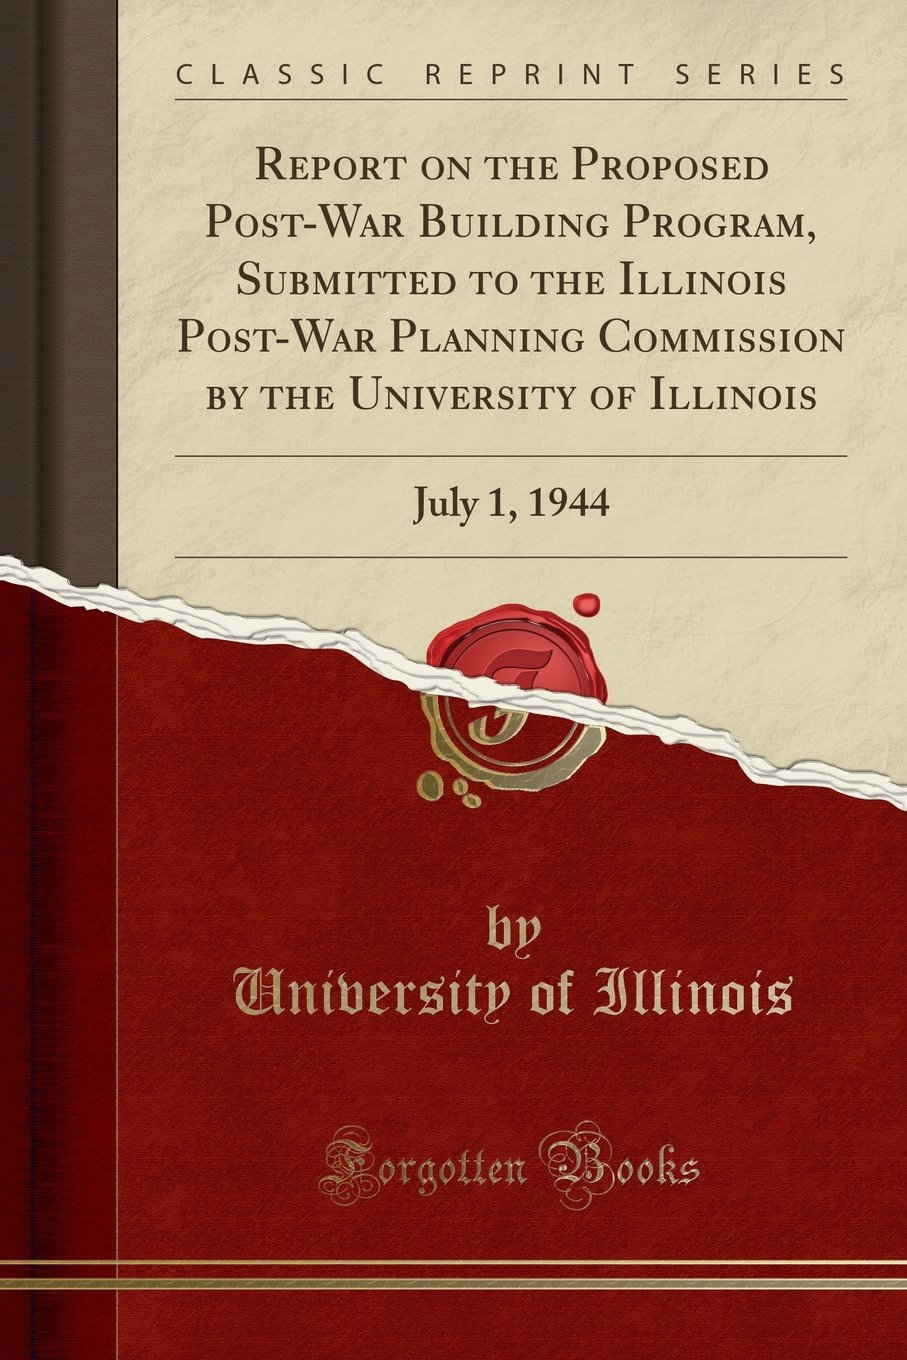 Download Report on the Proposed Post-War Building Program, Submitted to the Illinois Post-War Planning Commission by the University of Illinois: July 1, 1944 (Classic Reprint) ebook